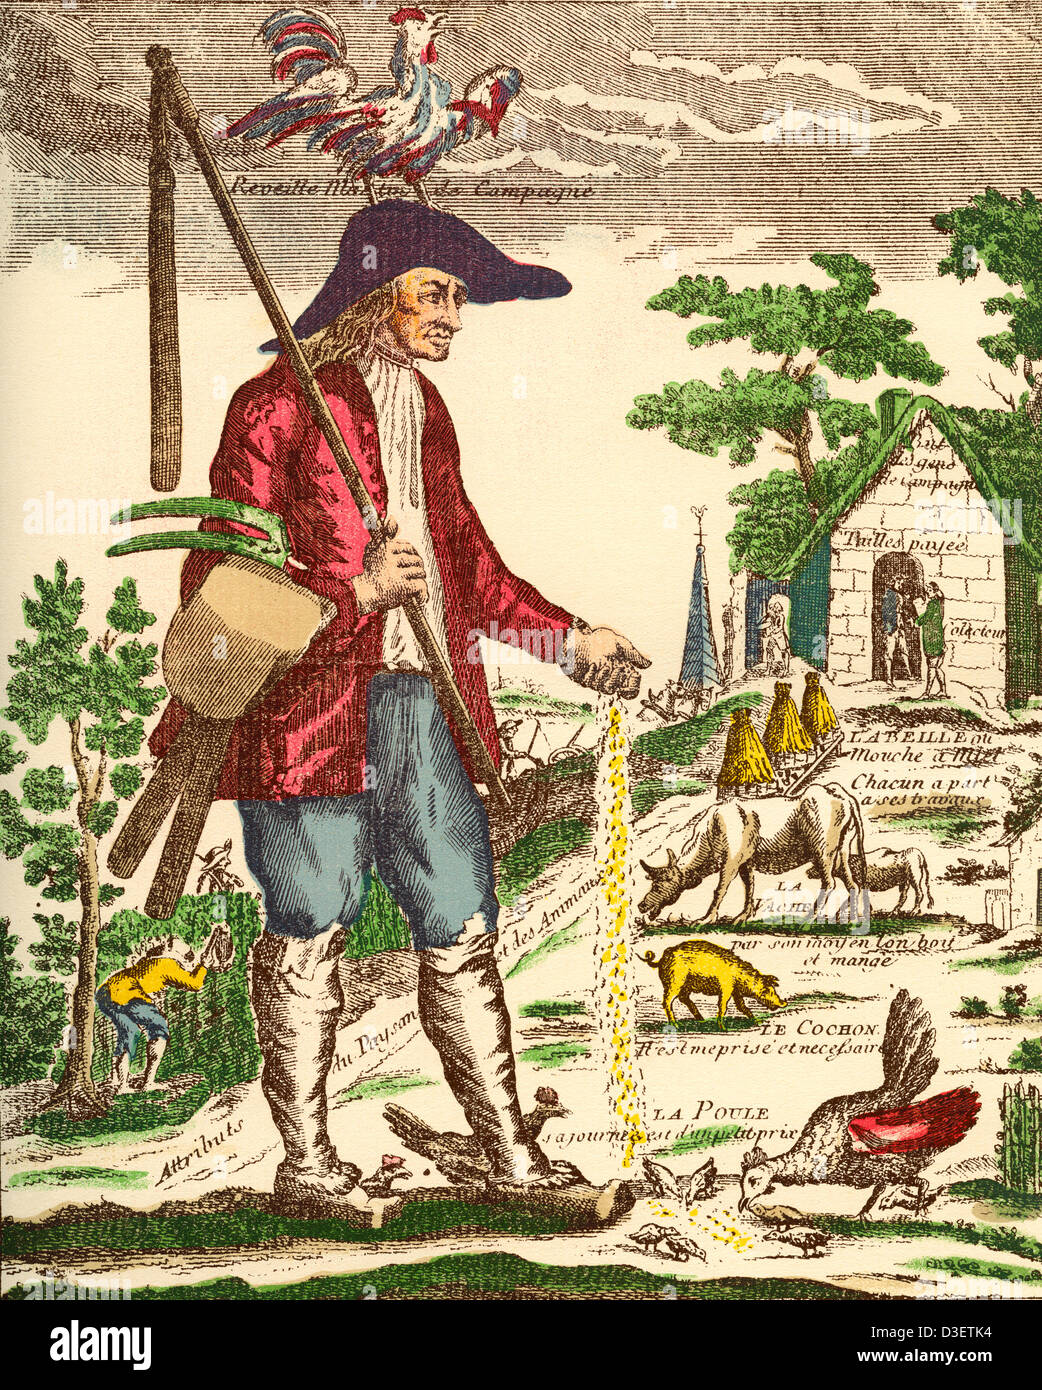 French Peasant 18th Century Stock Photos Amp French Peasant